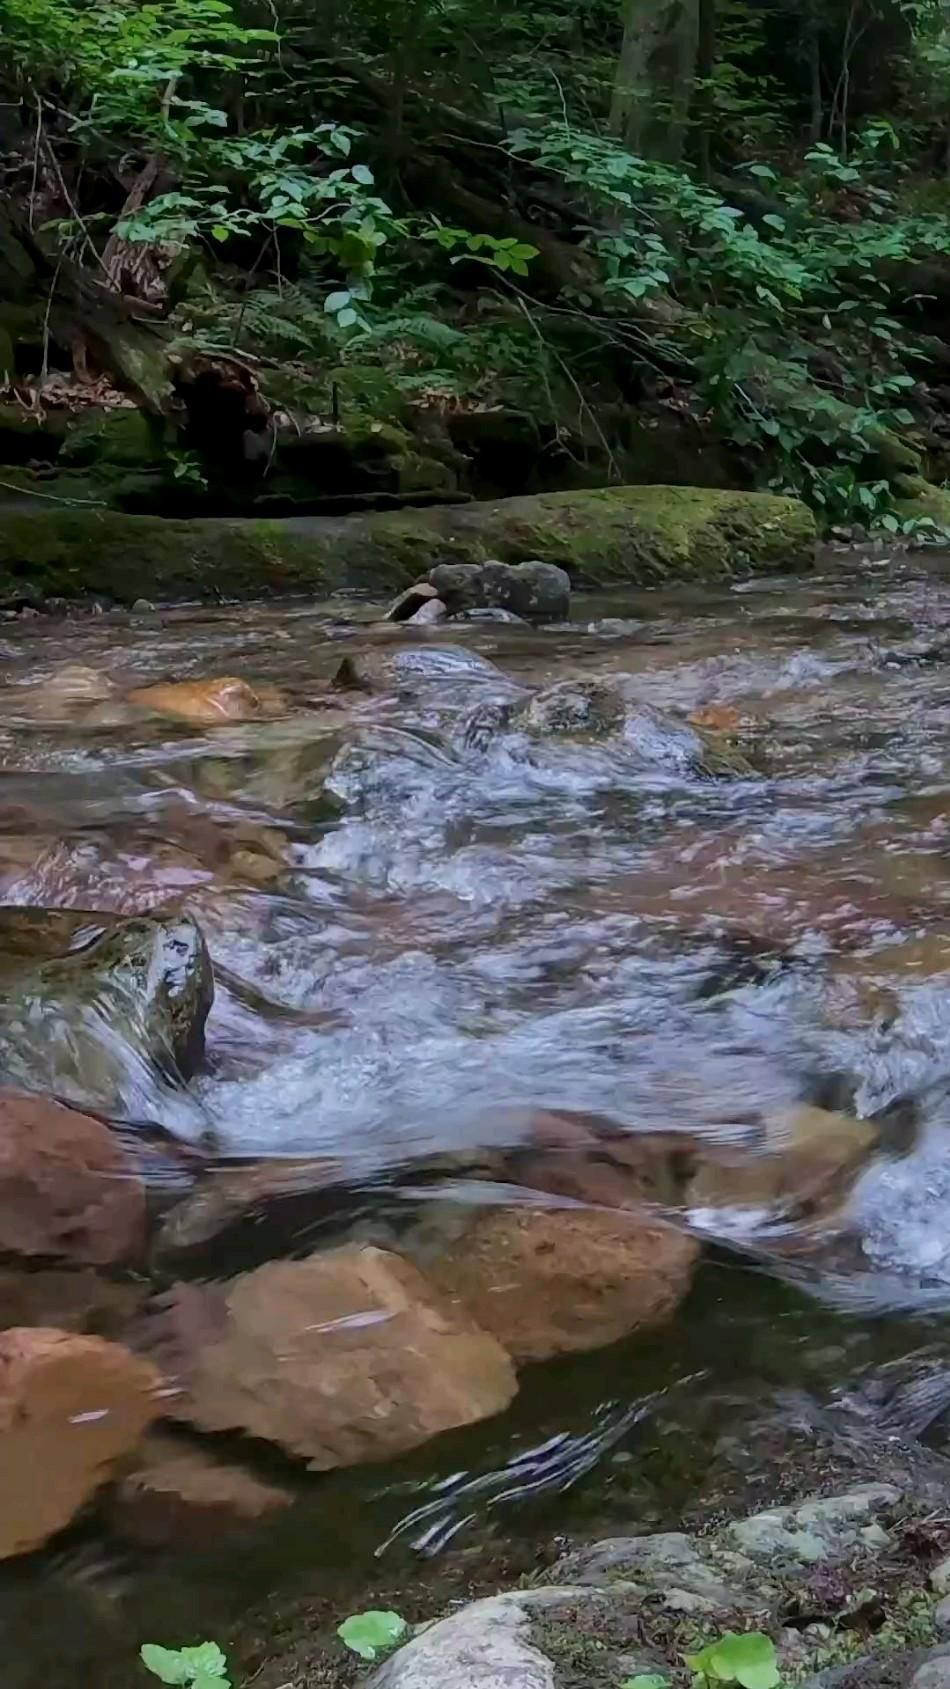 Put your headphones on and listen to the nature sound��